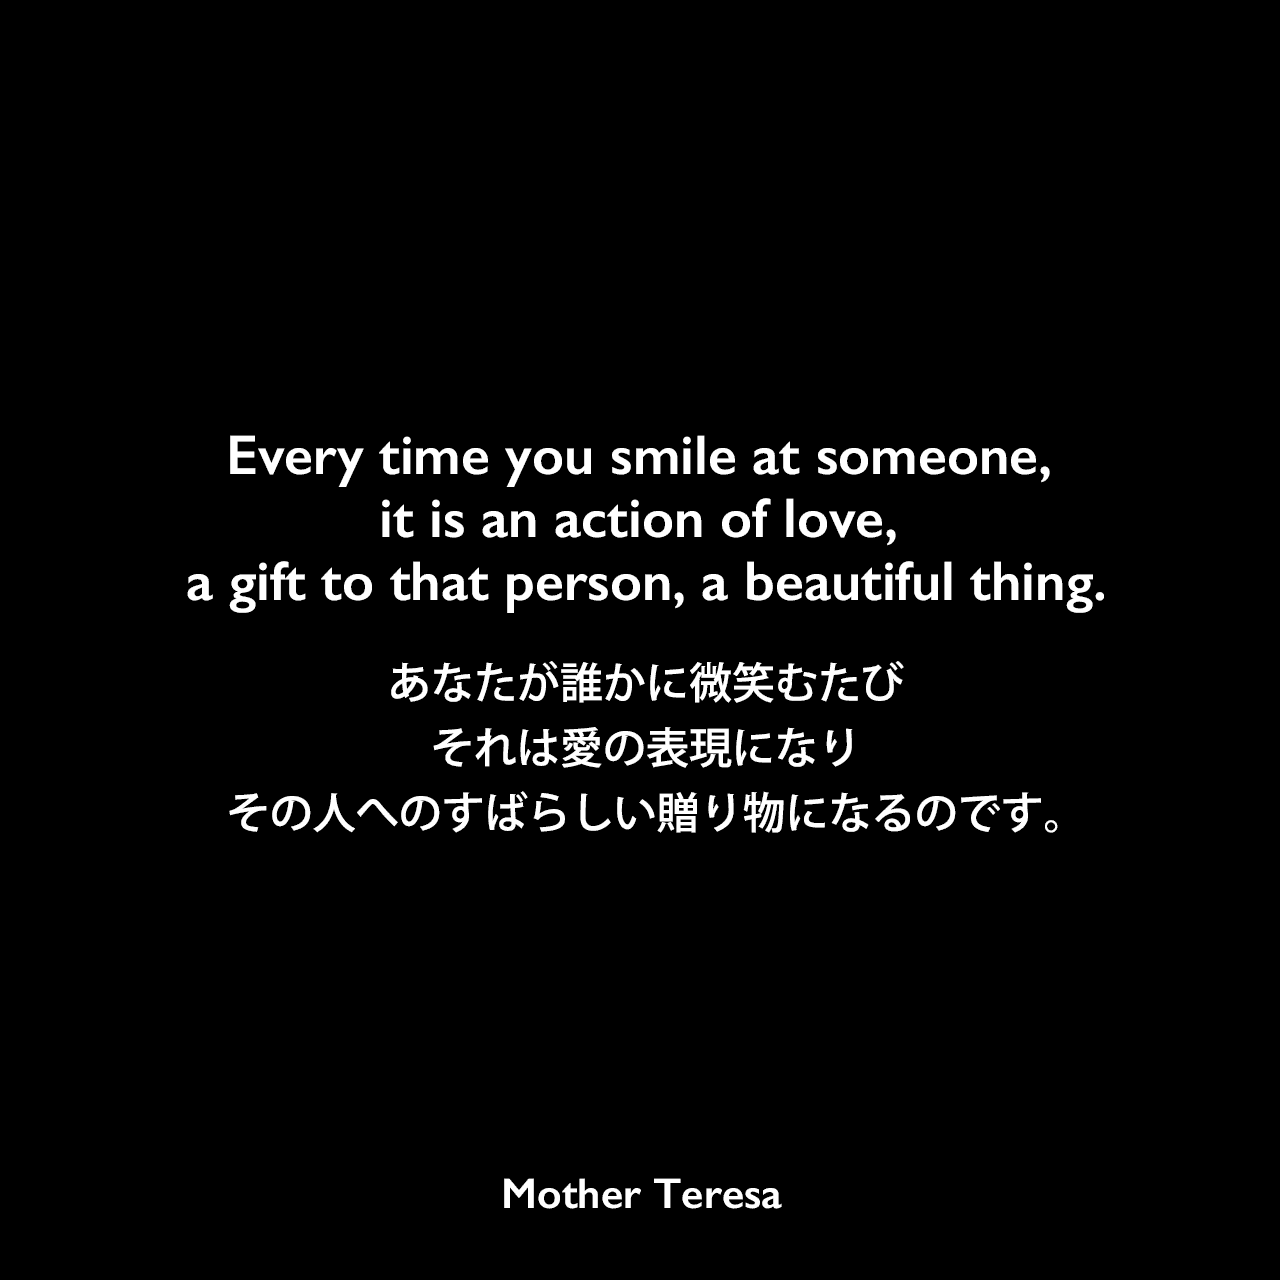 Every time you smile at someone, it is an action of love, a gift to that person, a beautiful thing.誰かに微笑むたびこと、それは愛の表現であり、その人へのすばらしい贈り物になるのです。Mother Teresa